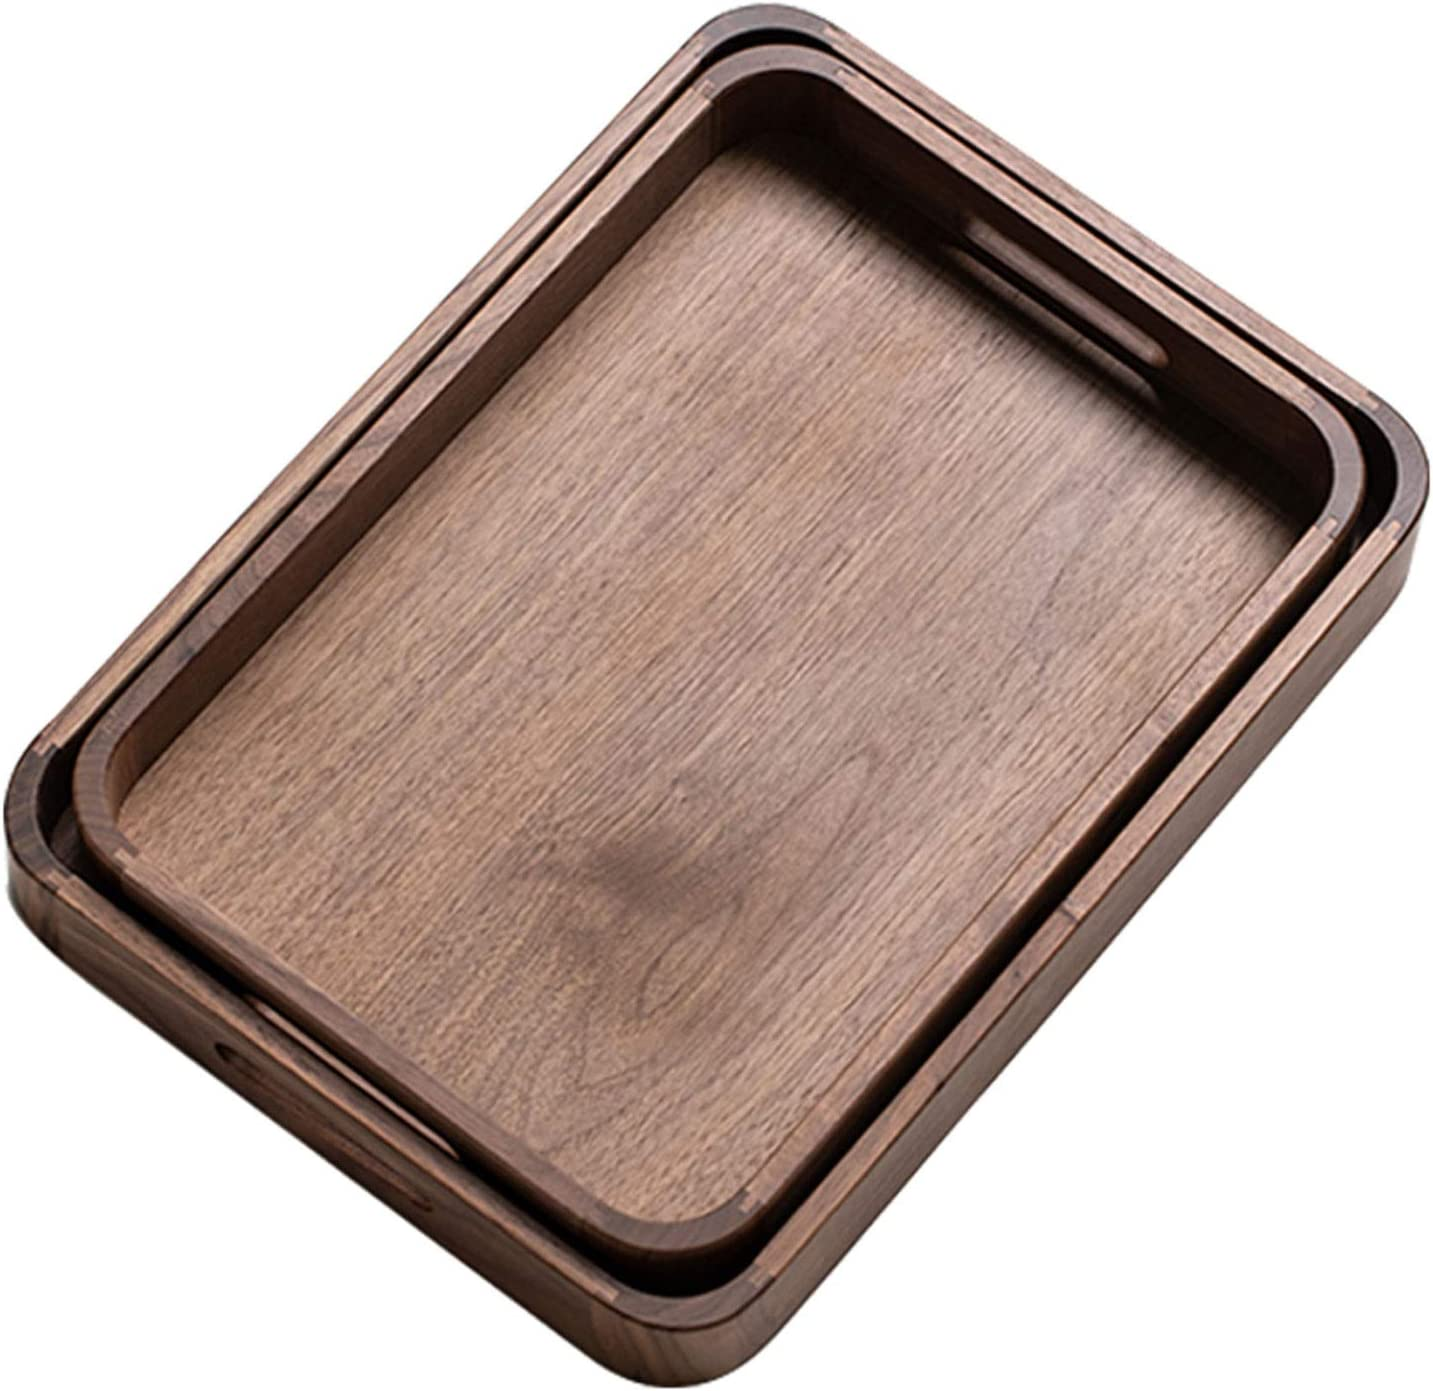 Wooden Dealing full price reduction Tray Rectangular Black Walnut Water for Wood C free shipping Solid